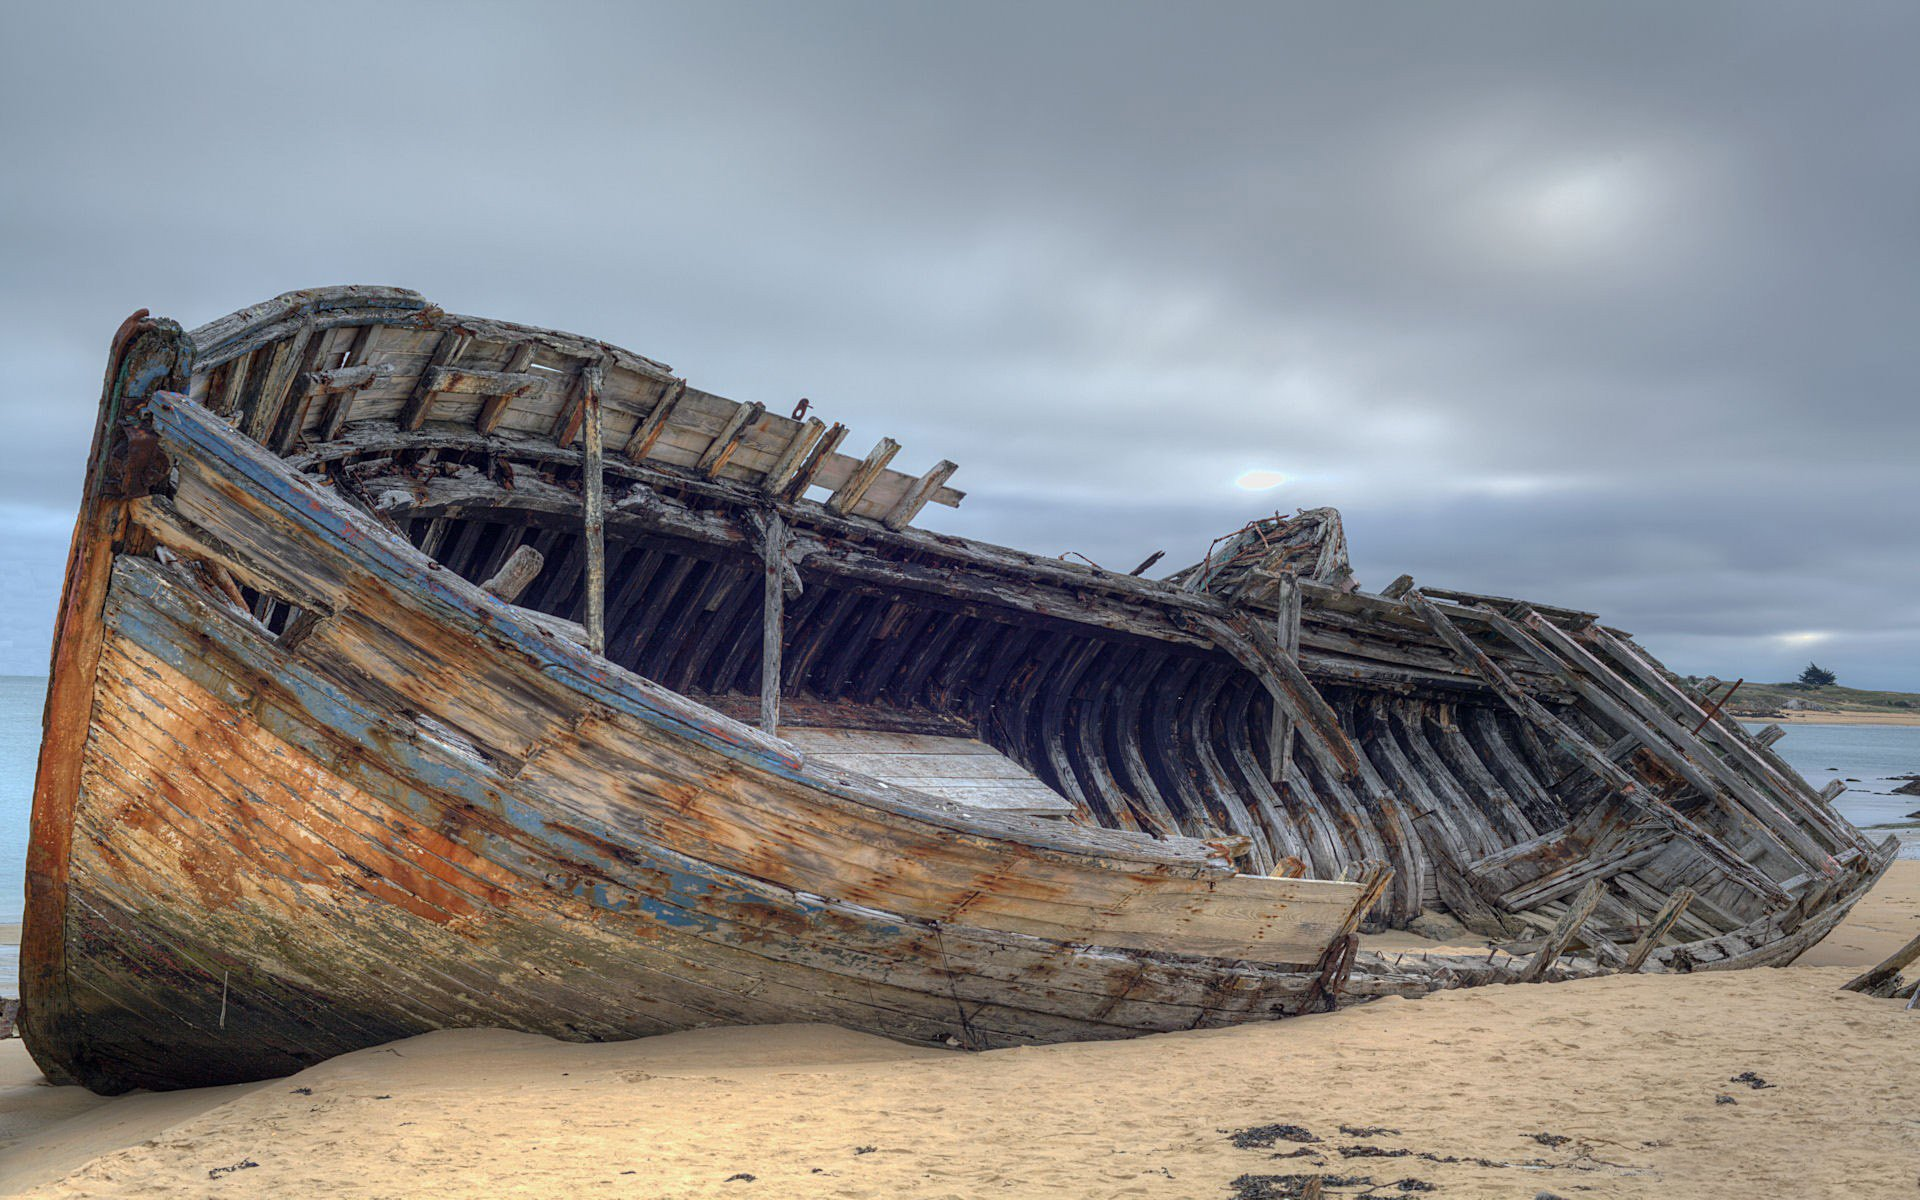 Pictures of sunken ships A Neat Trick To Determine Your Dominant Eye - DIY Photography